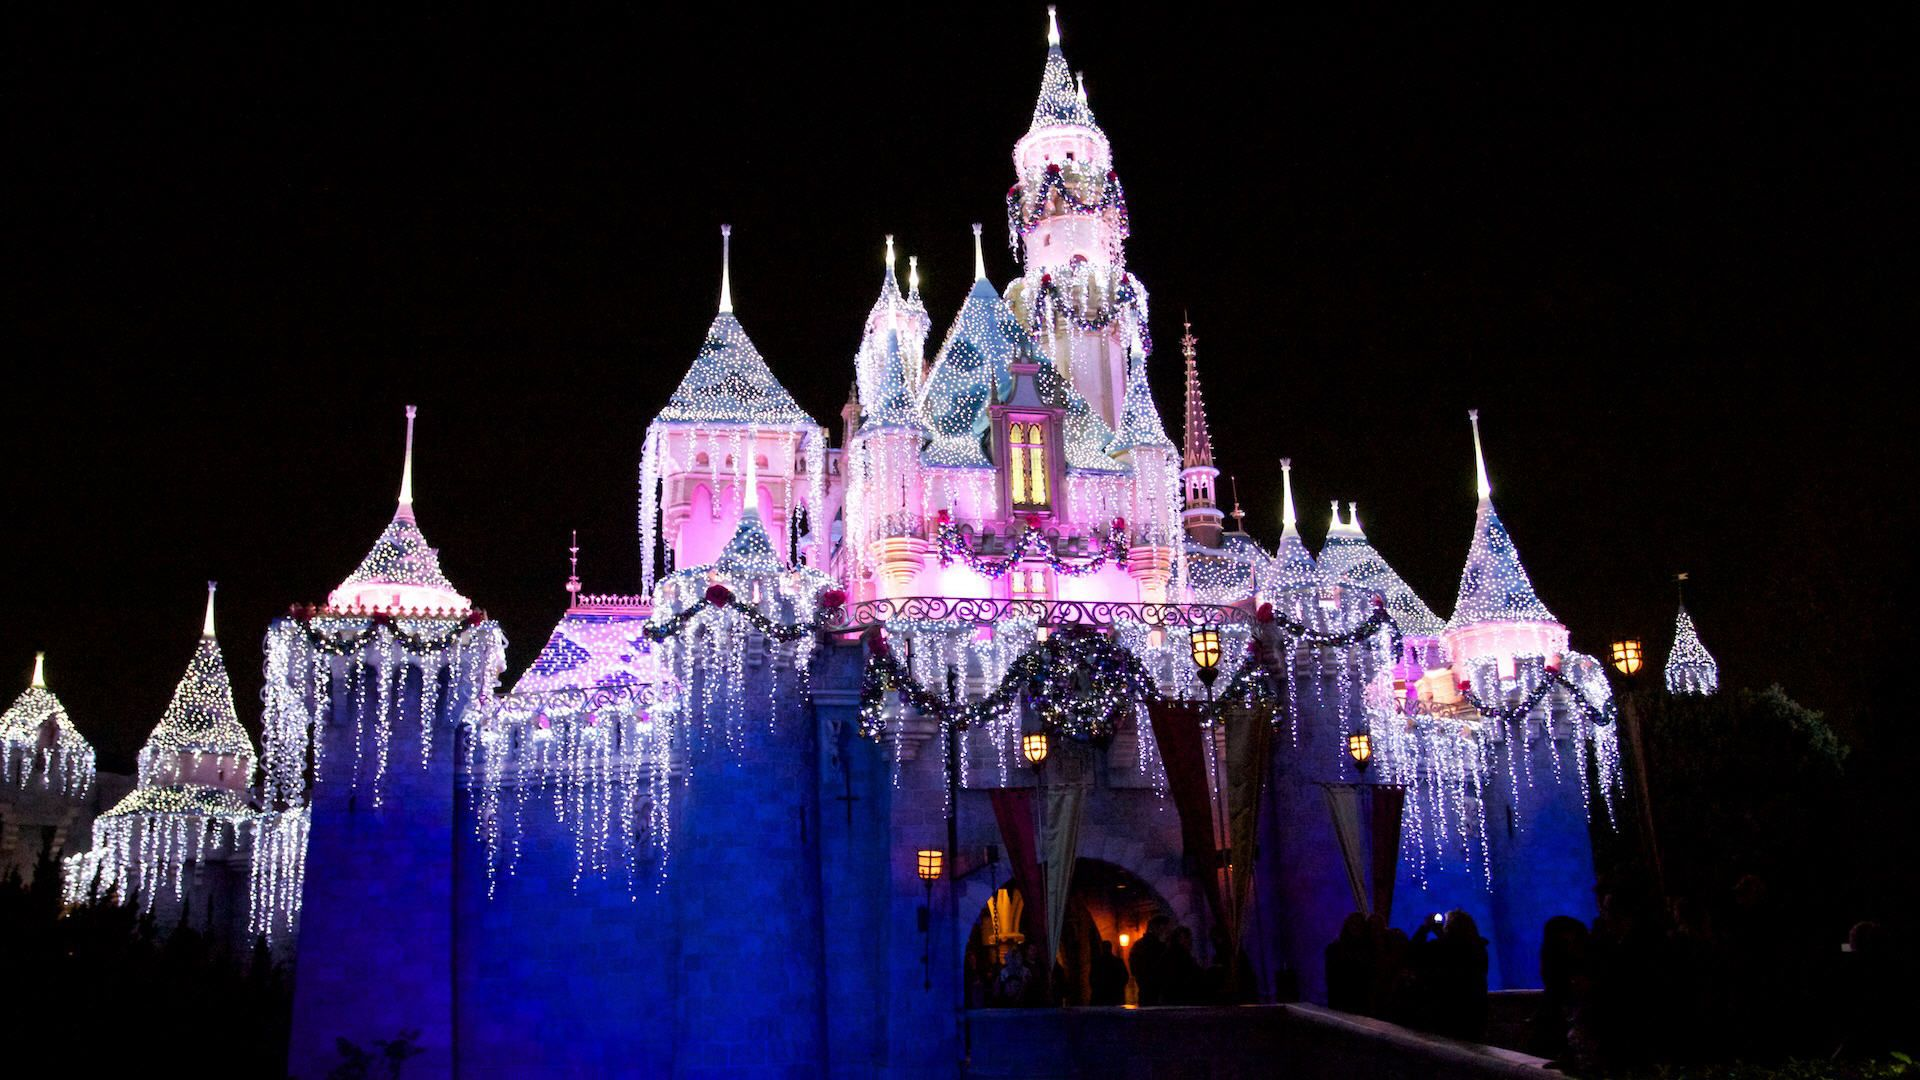 Walt Disney World Christmas Wallpaper 1920x1080 disney HD 1920x1080